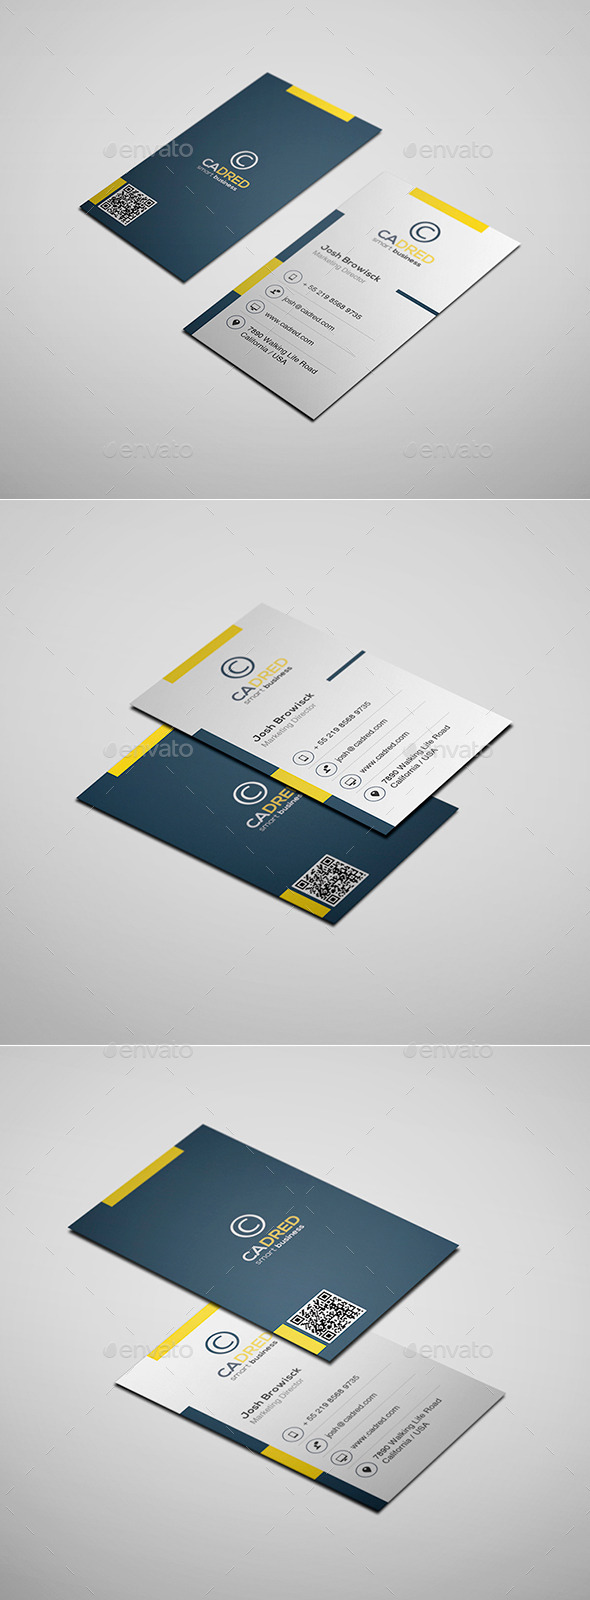 GraphicRiver Business Card Vol 23 11616025